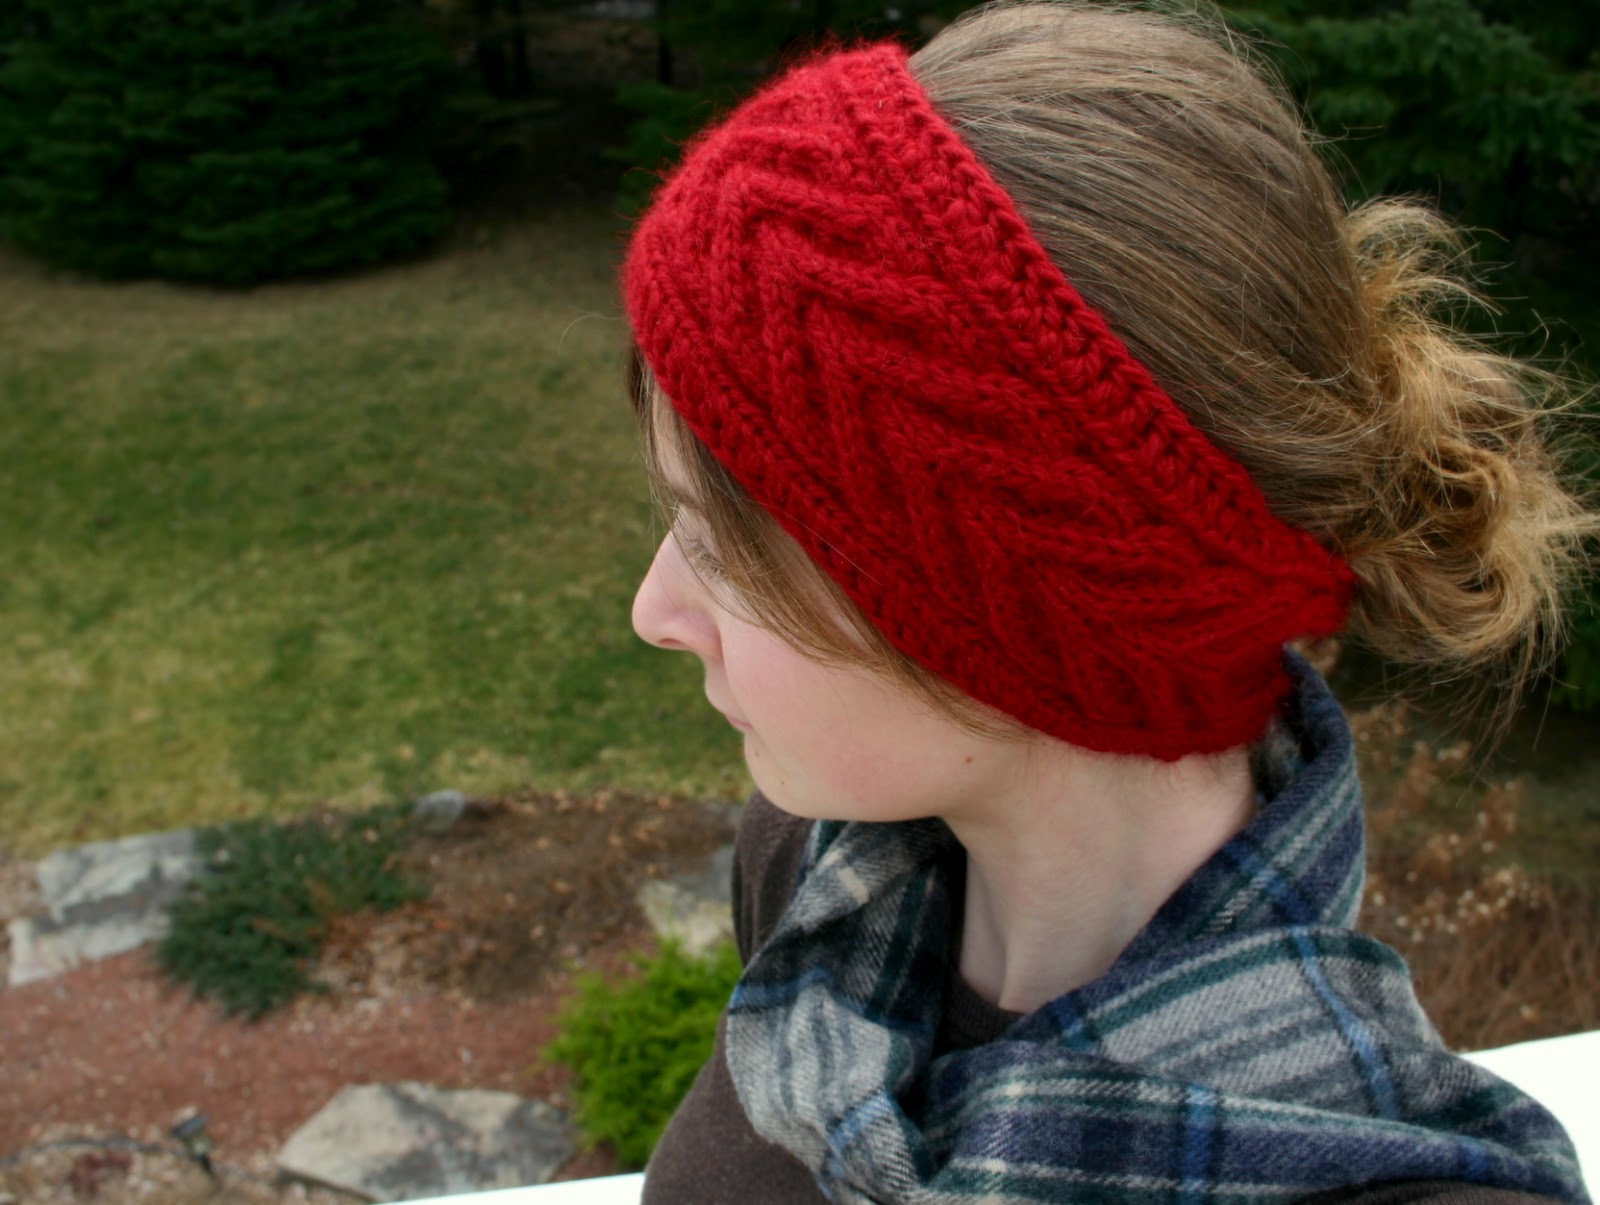 Knitting Headband Pattern Free : The Fuzzy Square: Horseshoe Cable Headband Knitting and Crochet Pattern